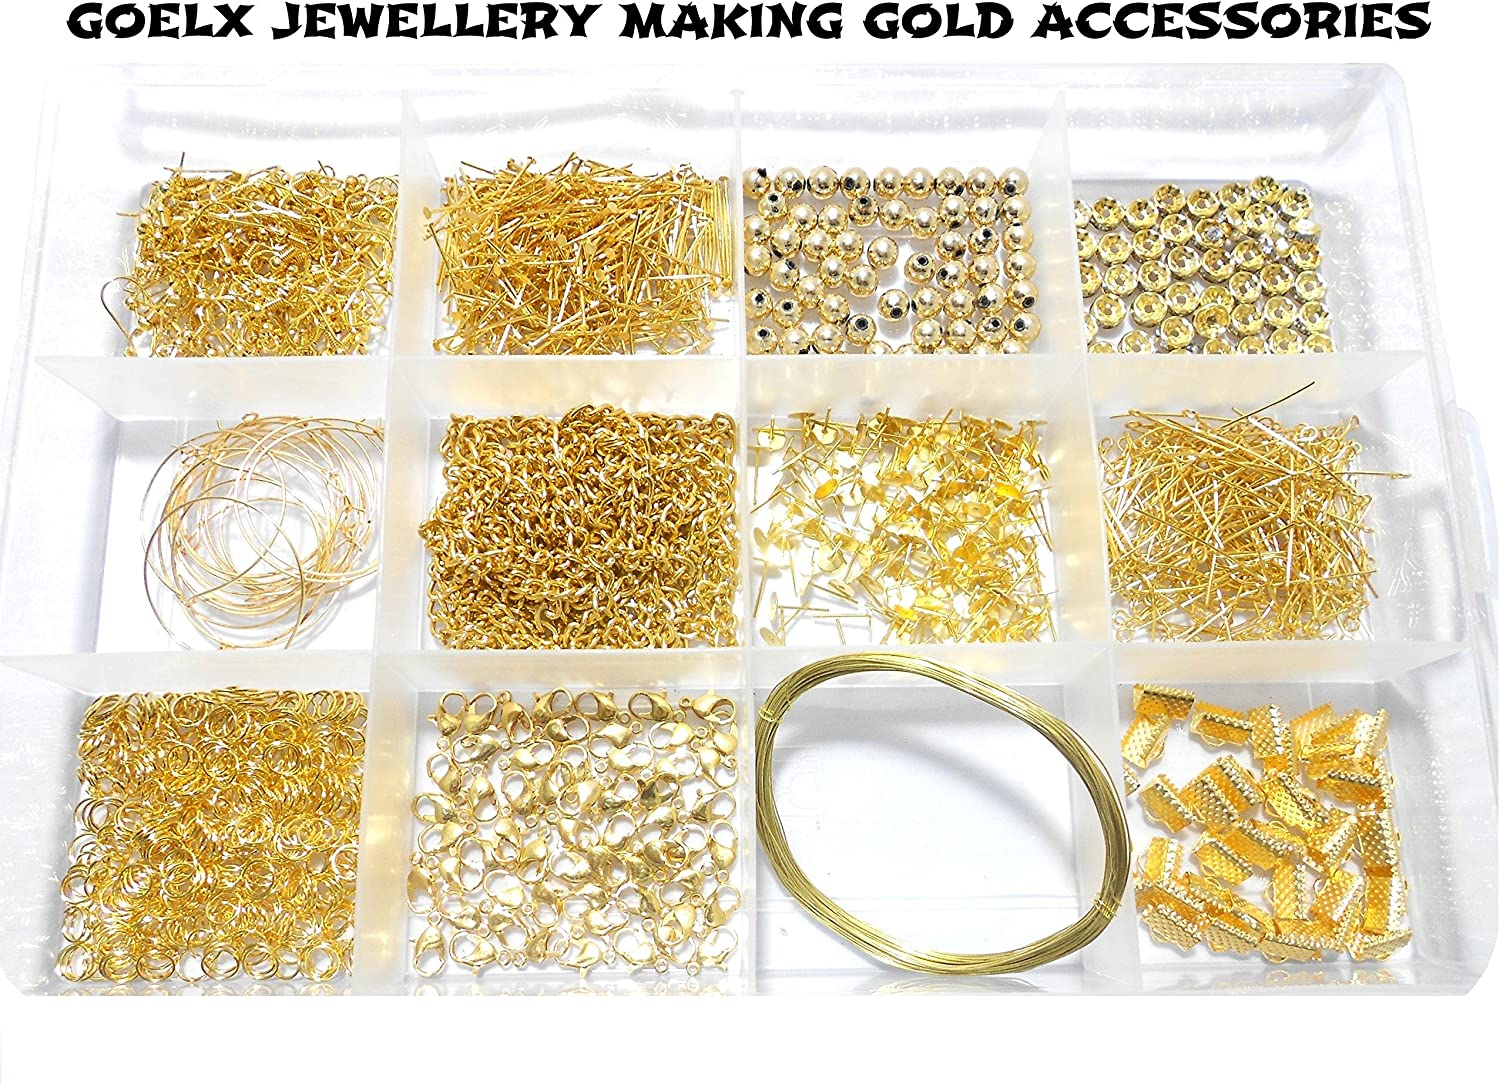 Amazon Com Goelx Goelx Diy Findings Gold Jewellery Making Accessories Kit All Basic Gold Jewellery Materials With Free Storage Box Kitchen Dining